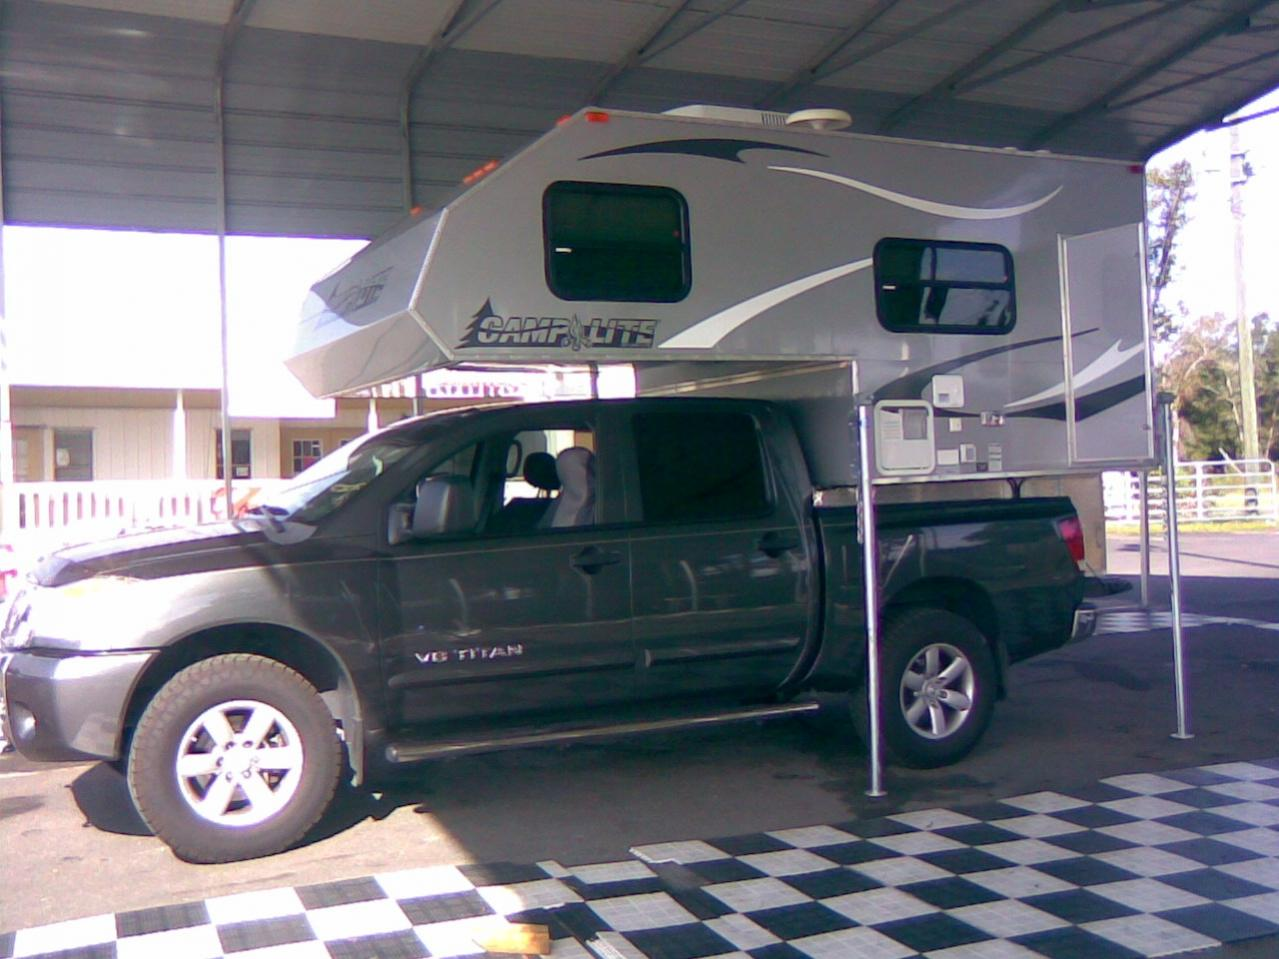 Airbags For Truck >> truck camper??? - Nissan Titan Forum